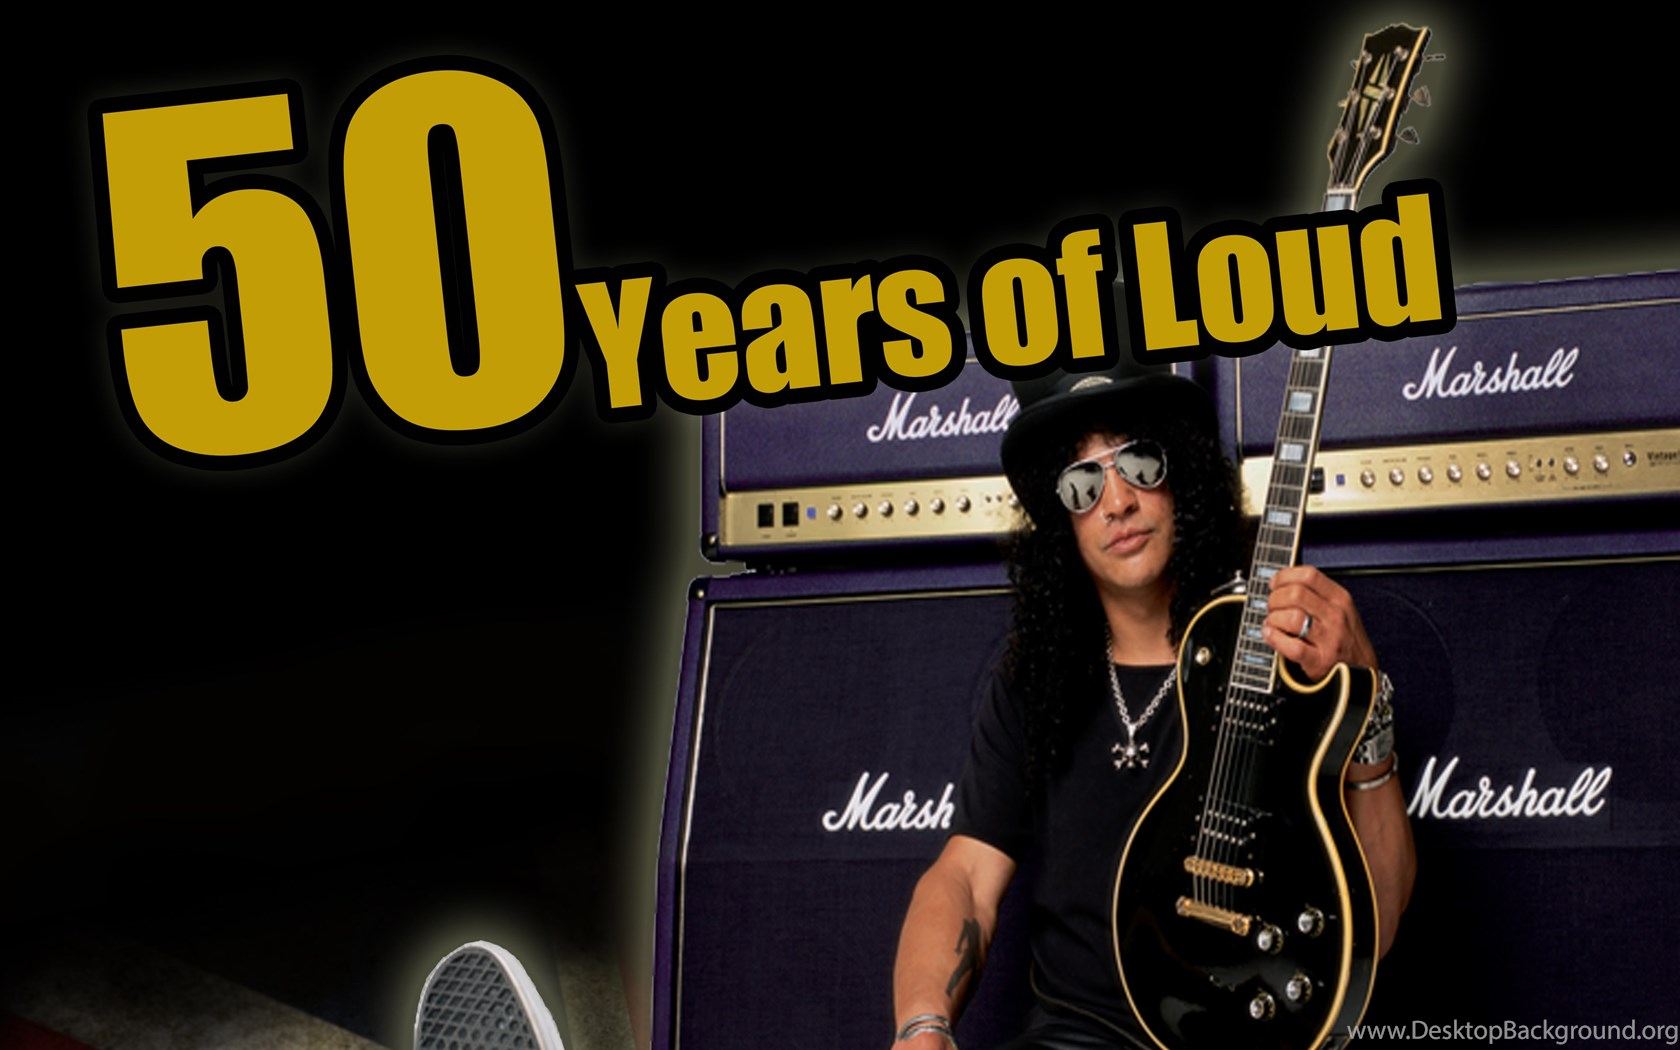 Marshall Amps 50 Years By Mickguitarman On DeviantArt Desktop Background